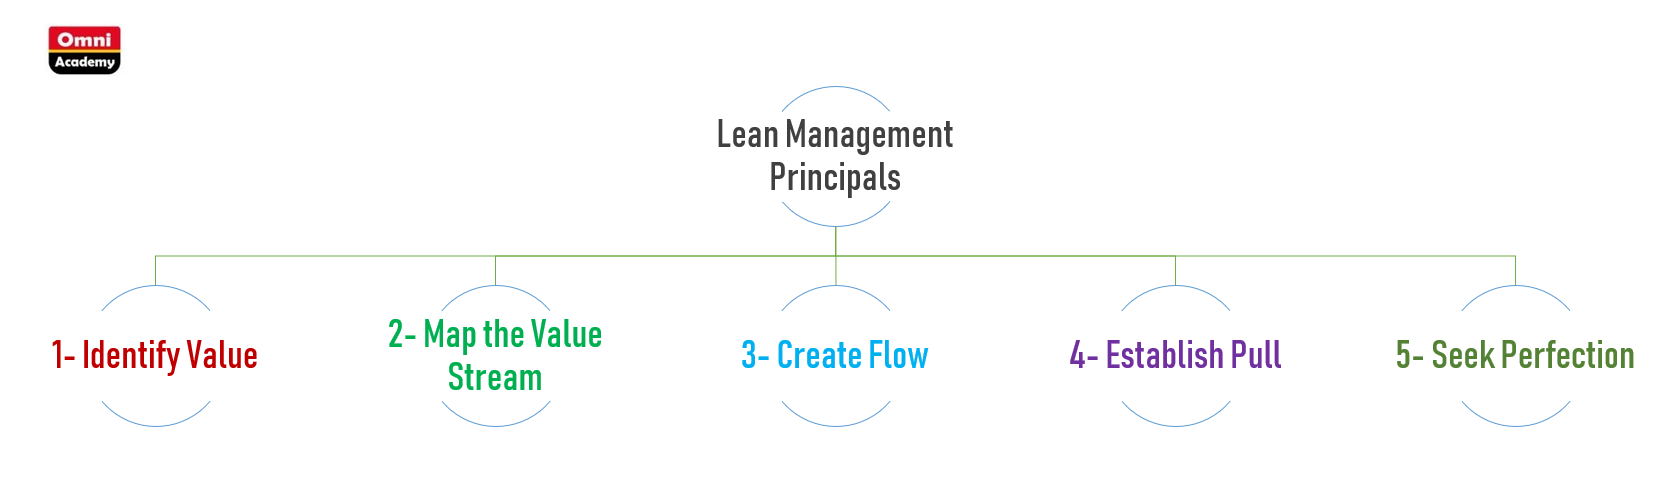 lean management training course omni academy